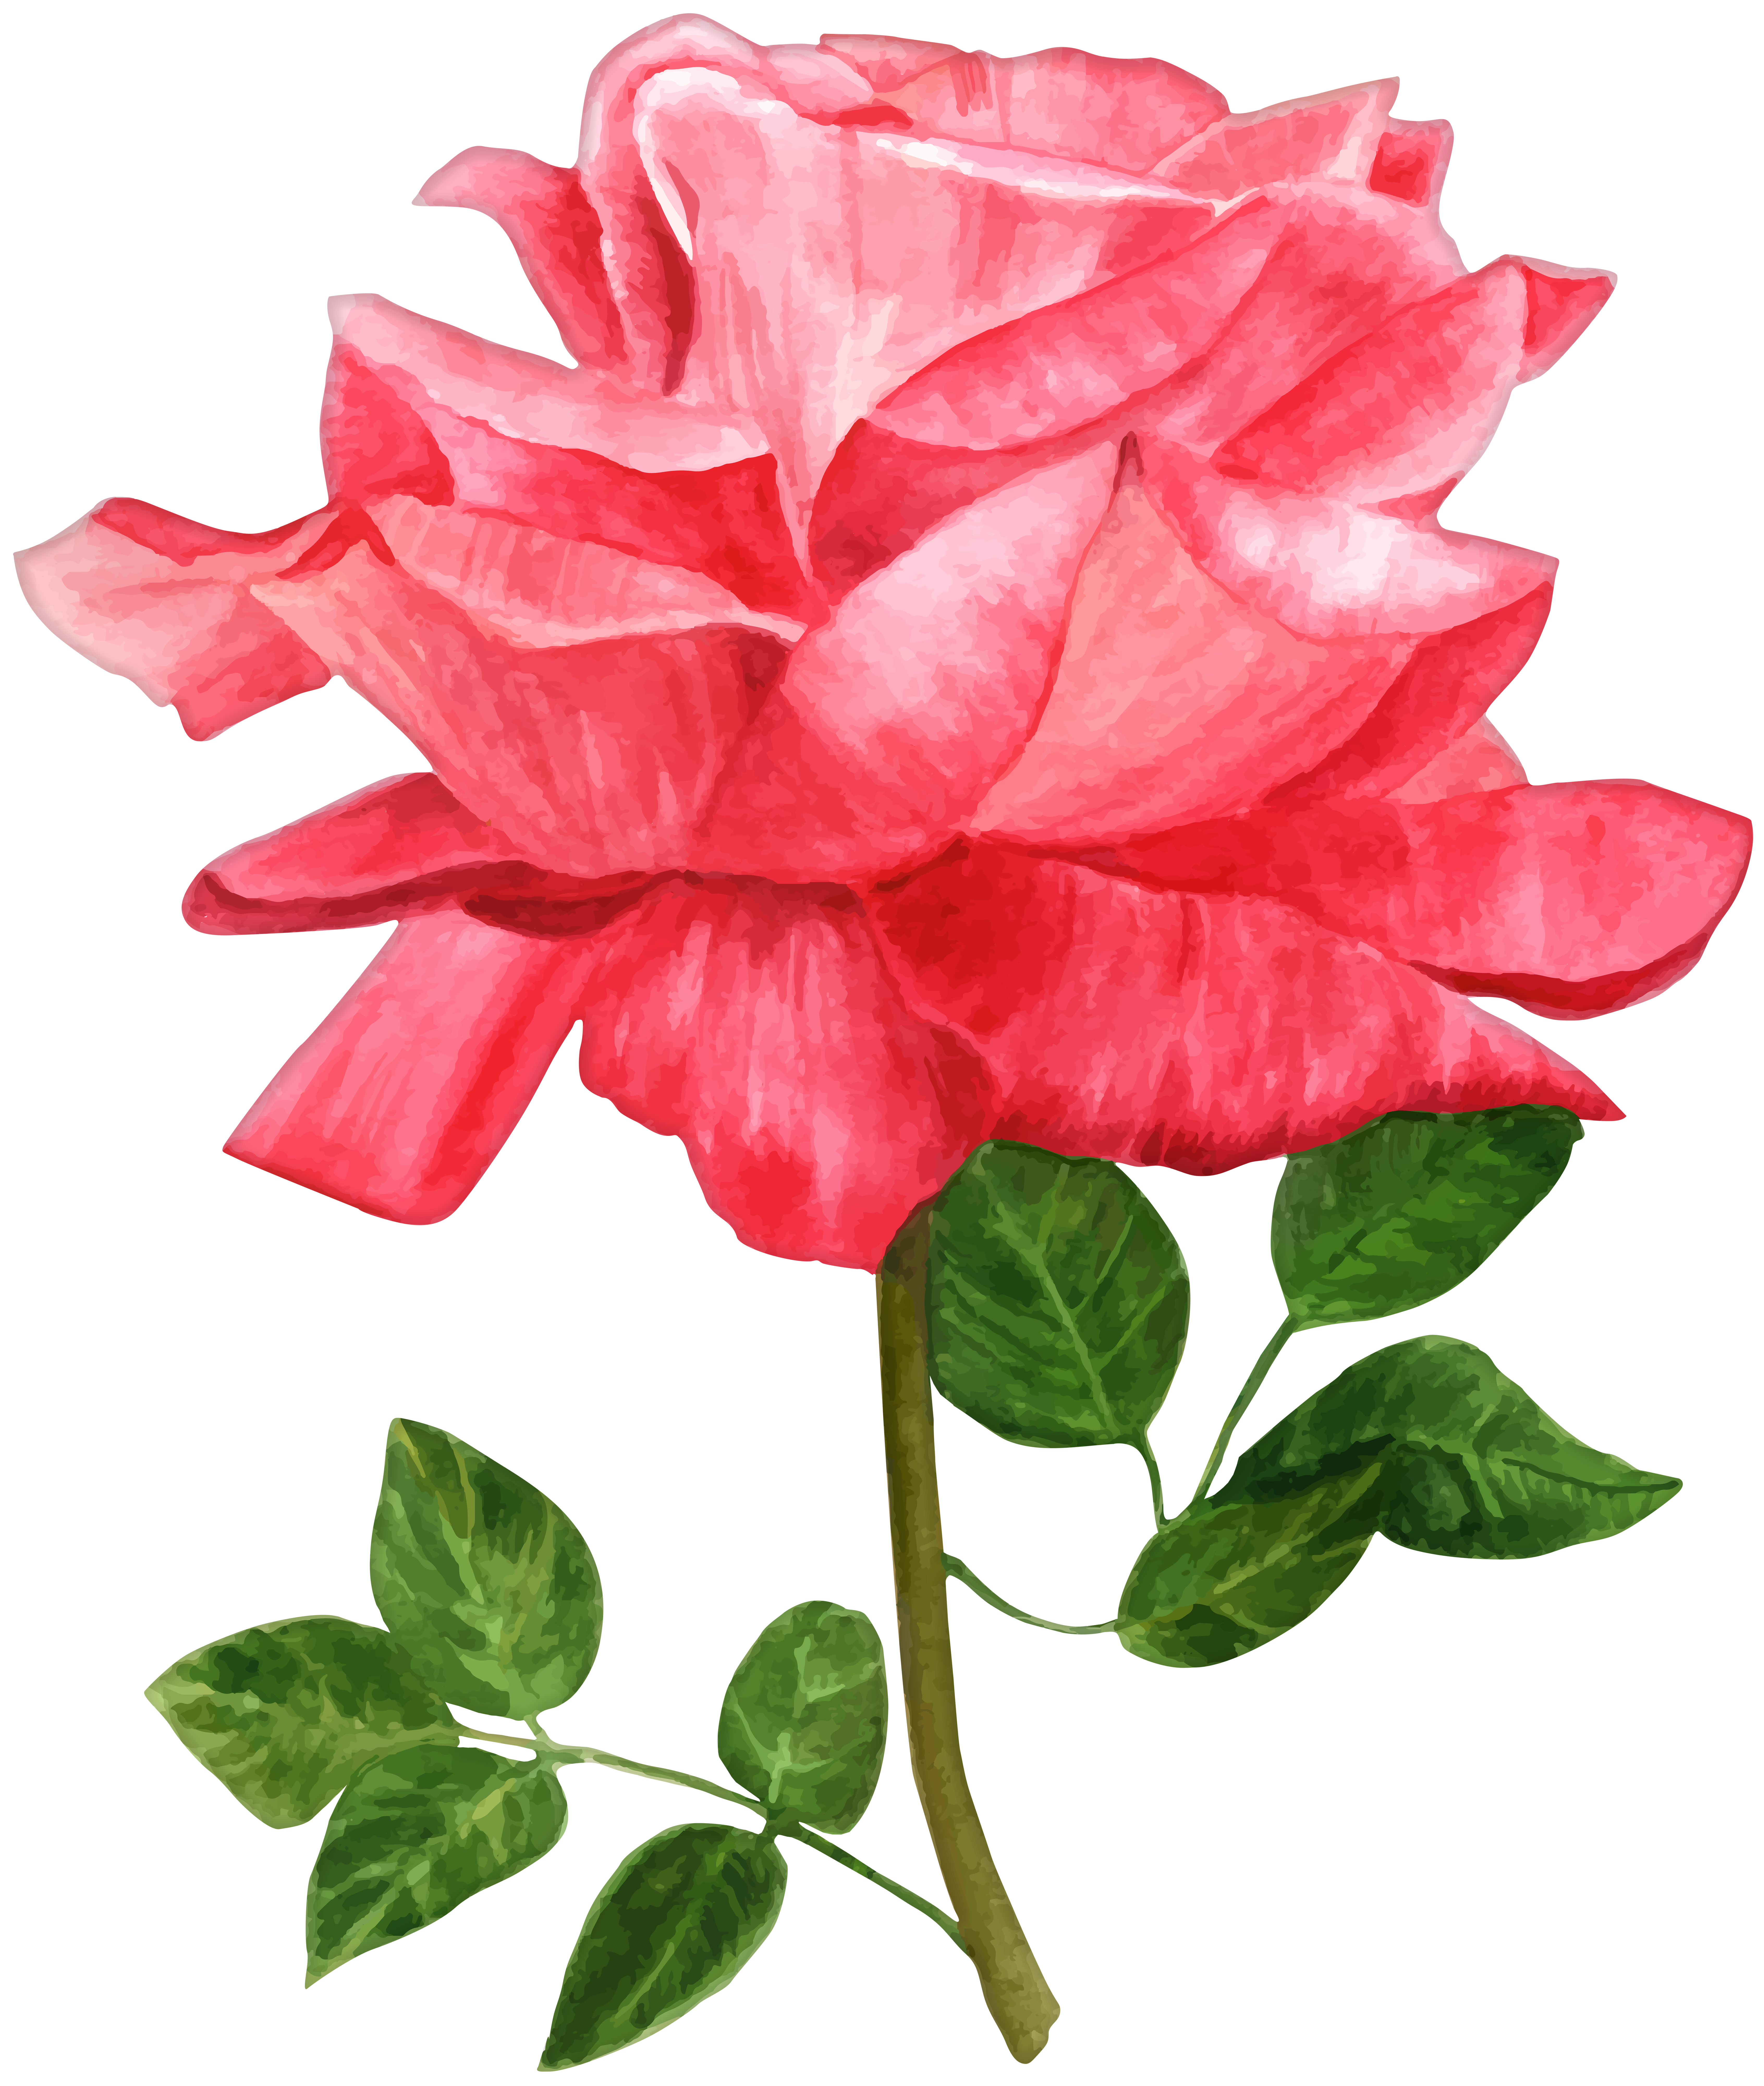 Rose clip art image. Flower png watercolor vector black and white stock